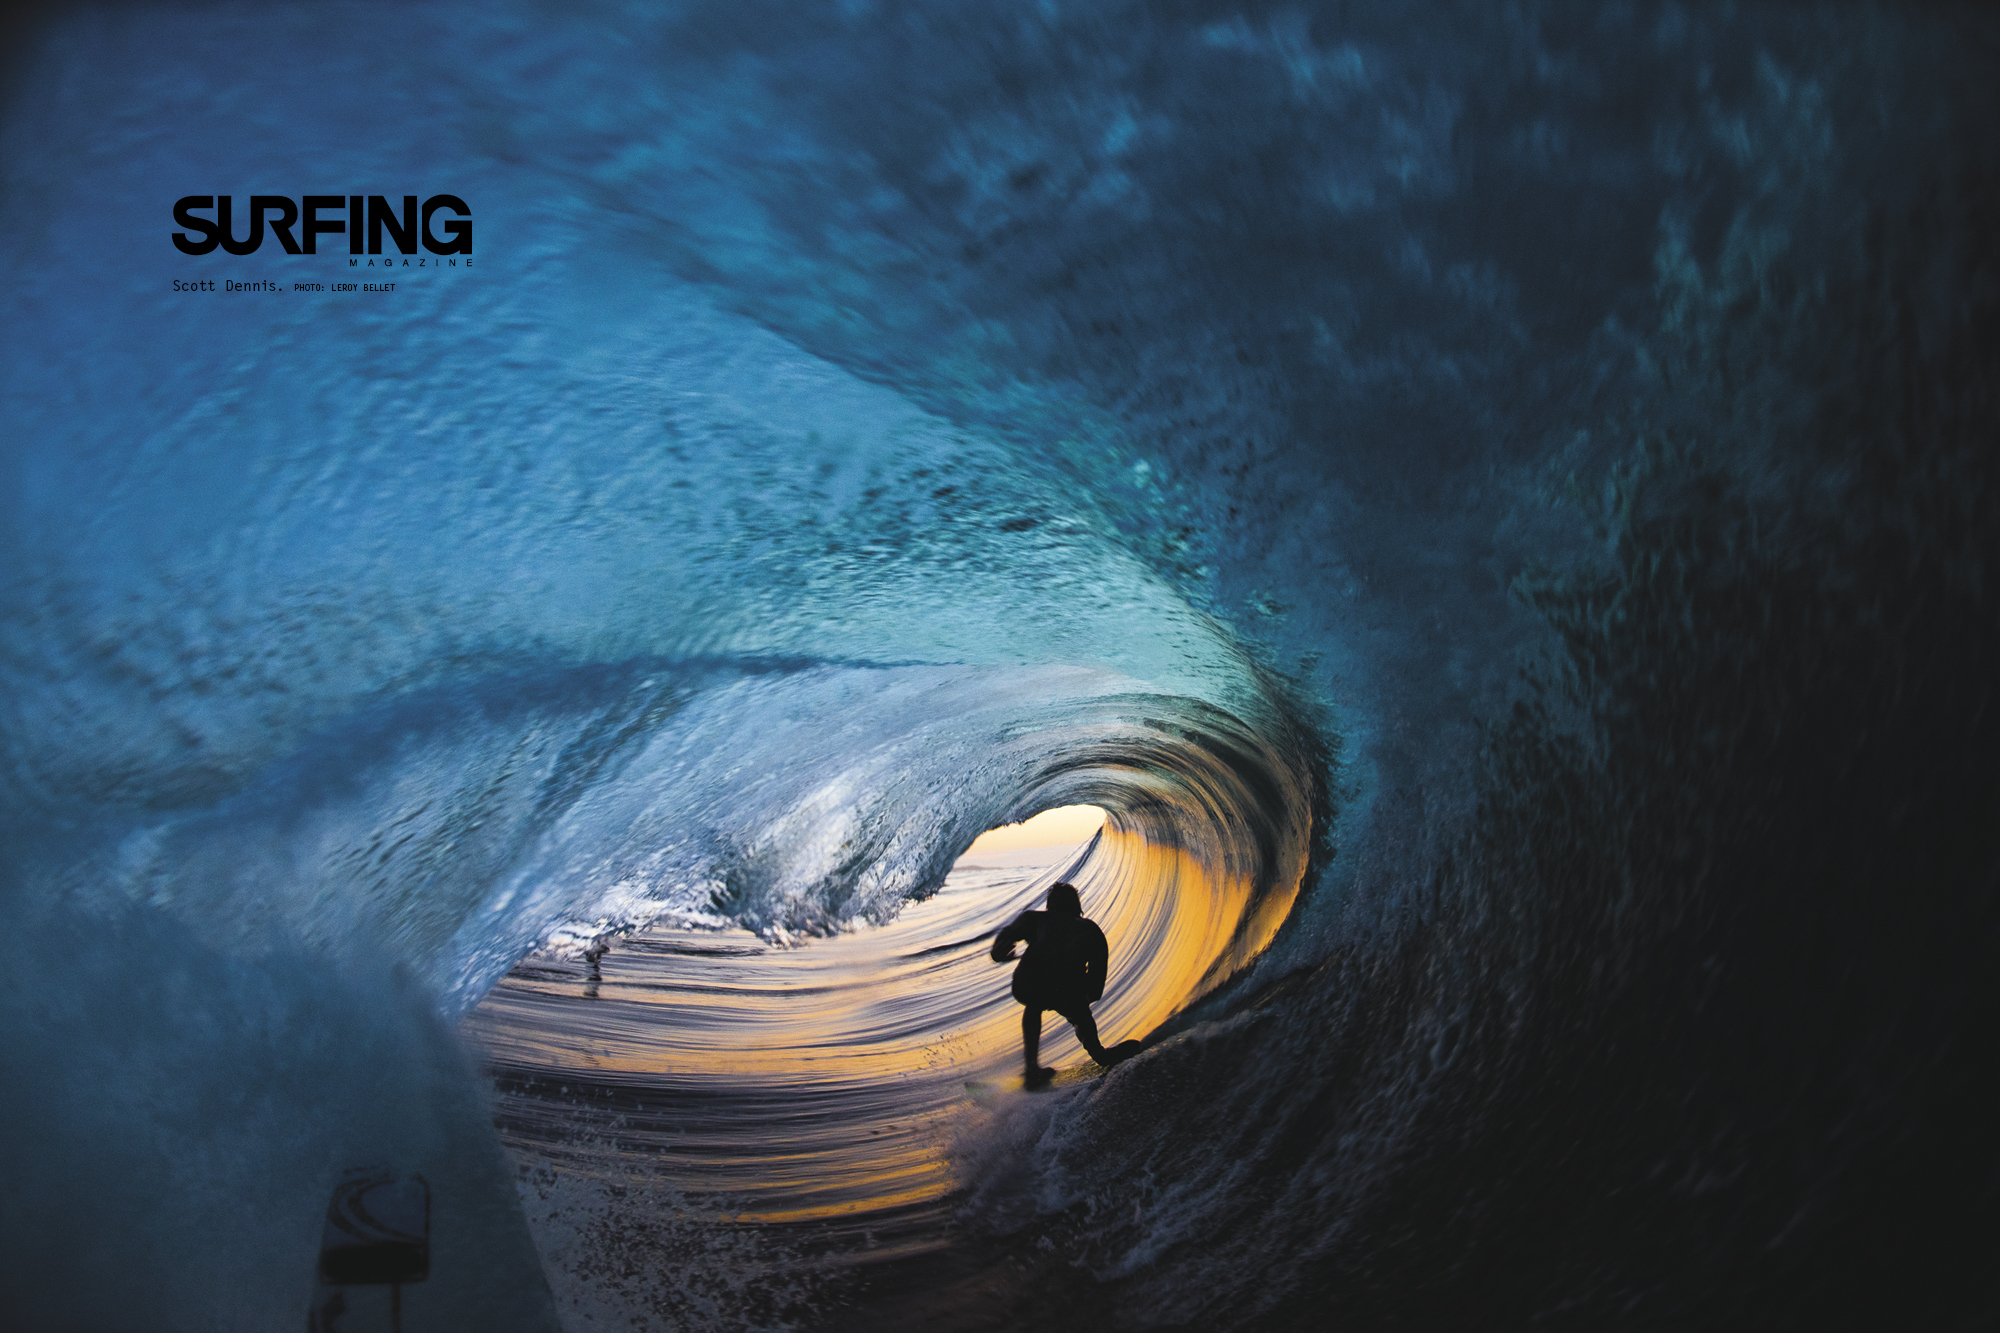 SURFING Wallpaper Issue 12 2015   SURFER Magazine 2000x1333